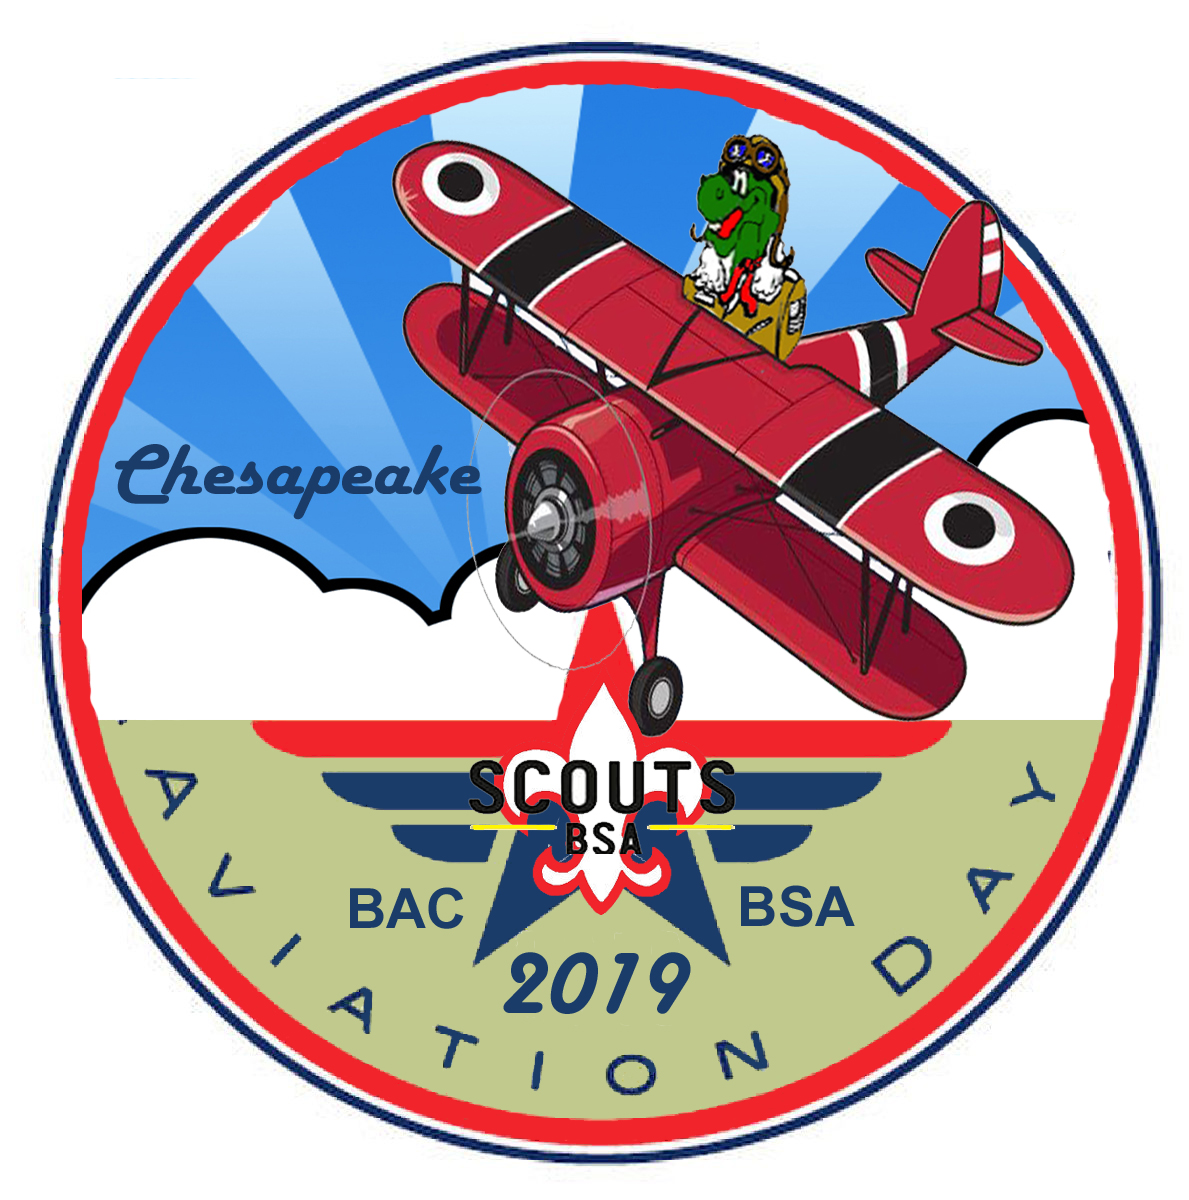 2019 Chesapeake District Aviation Day Patch